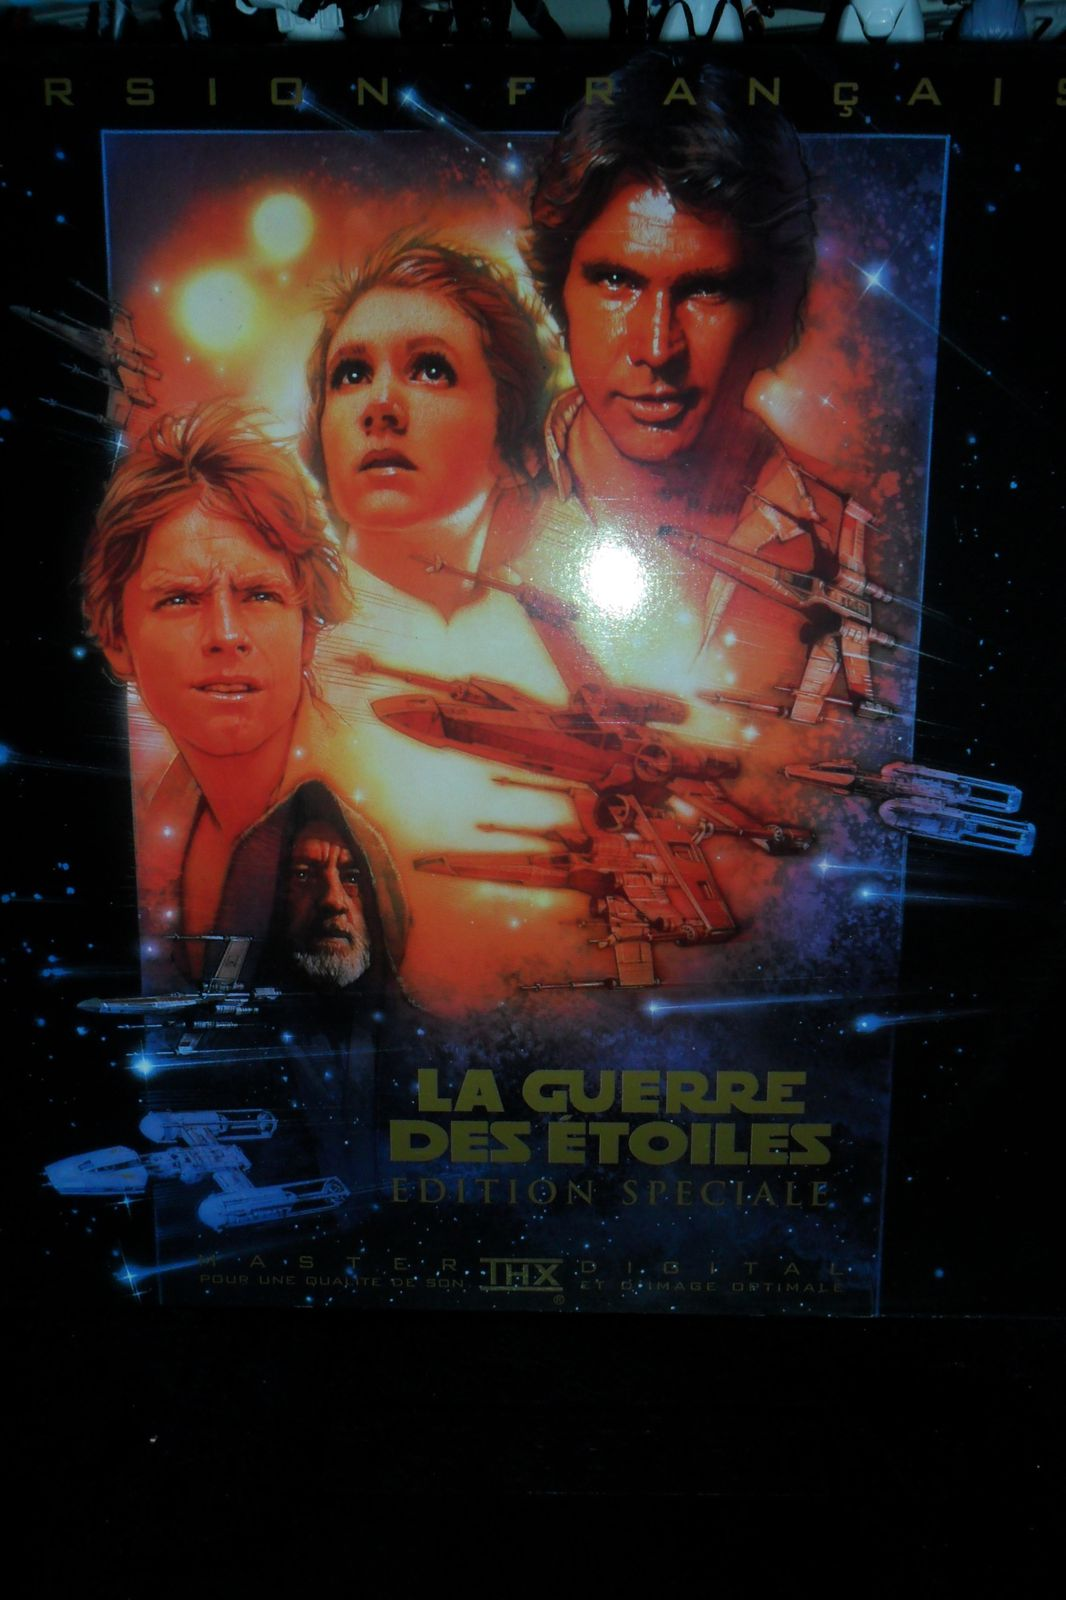 http://idata.over-blog.com/3/18/35/93/jano/film-star-wars/SAM_0024.JPG